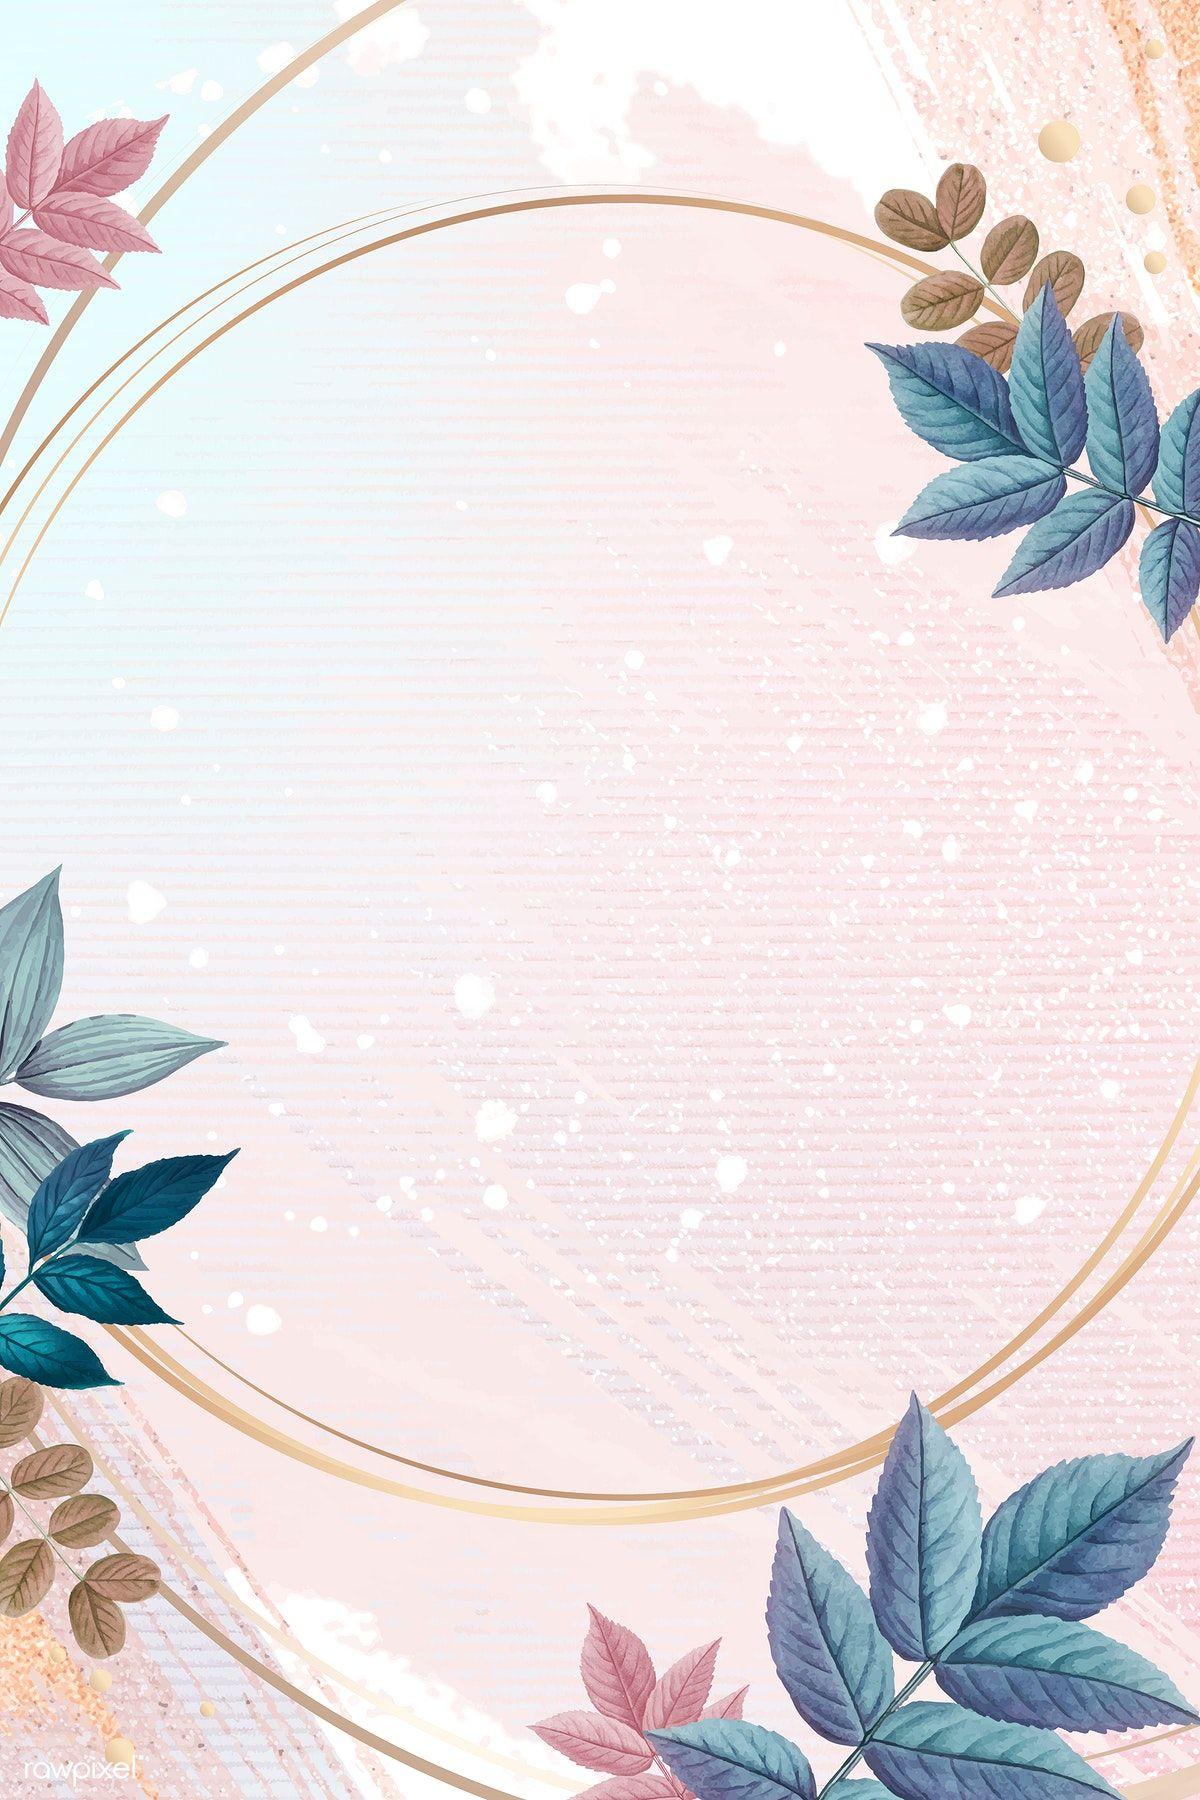 Download Premium Vector Of Blank Round Golden Frame Decorated With Flower Background Wallpaper Doodle Art Flowers Flower Backgrounds